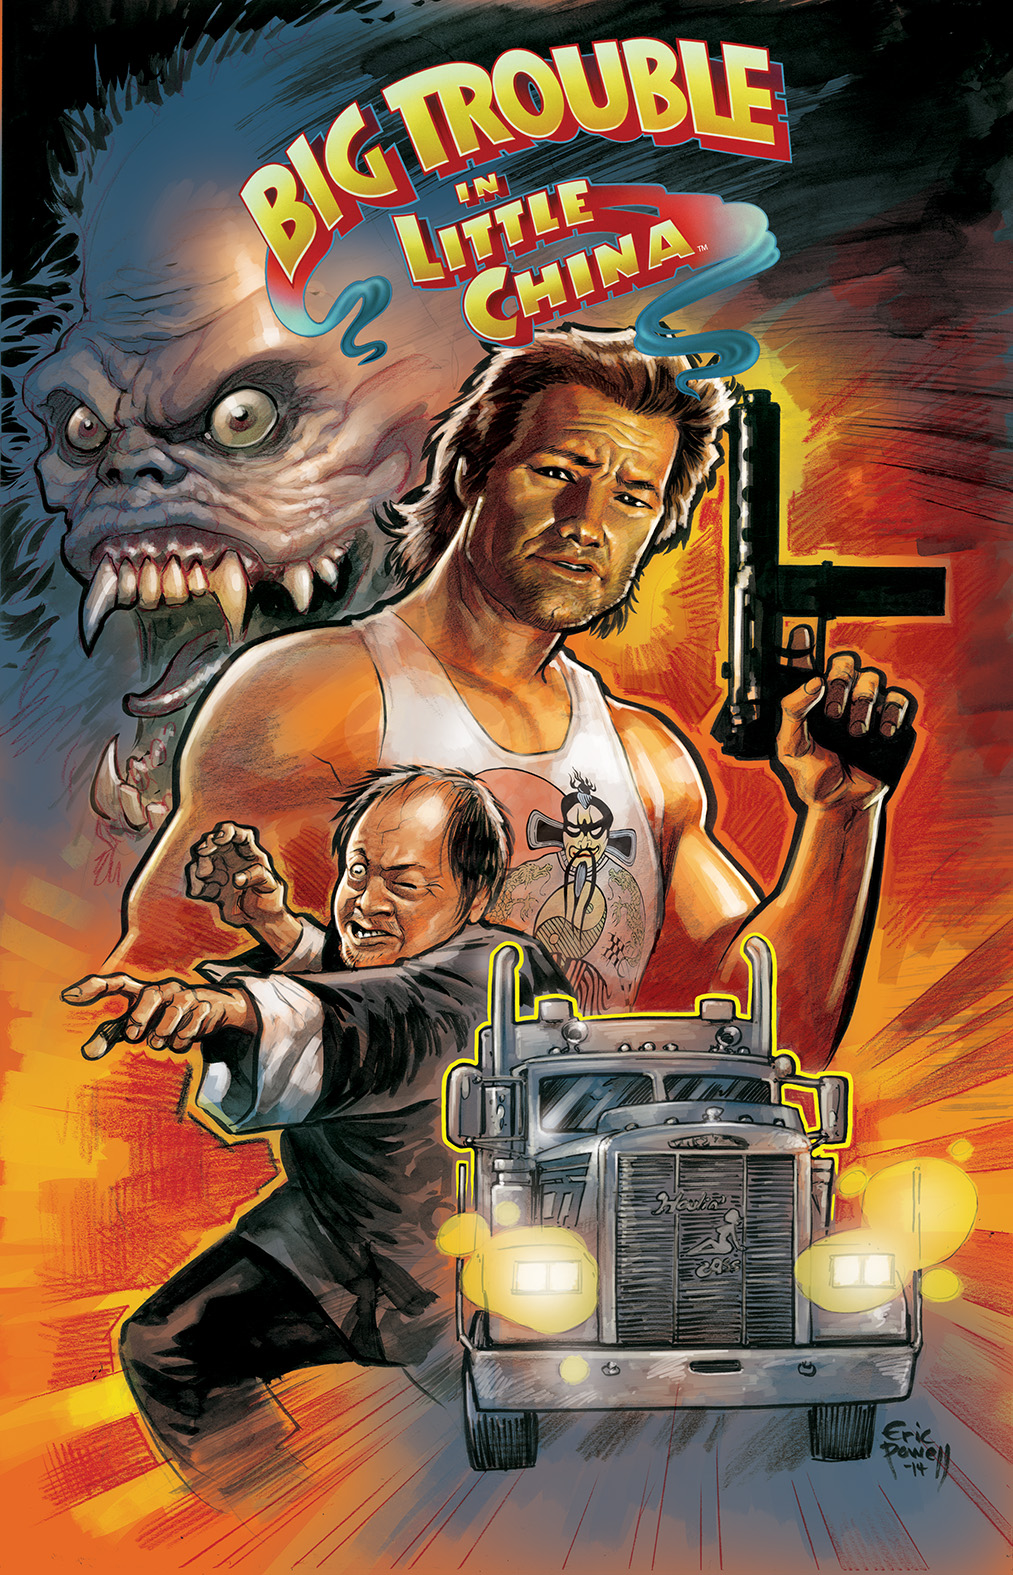 BIG TROUBLE IN LITTLE CHINA #1 Cover A by Eric Powell